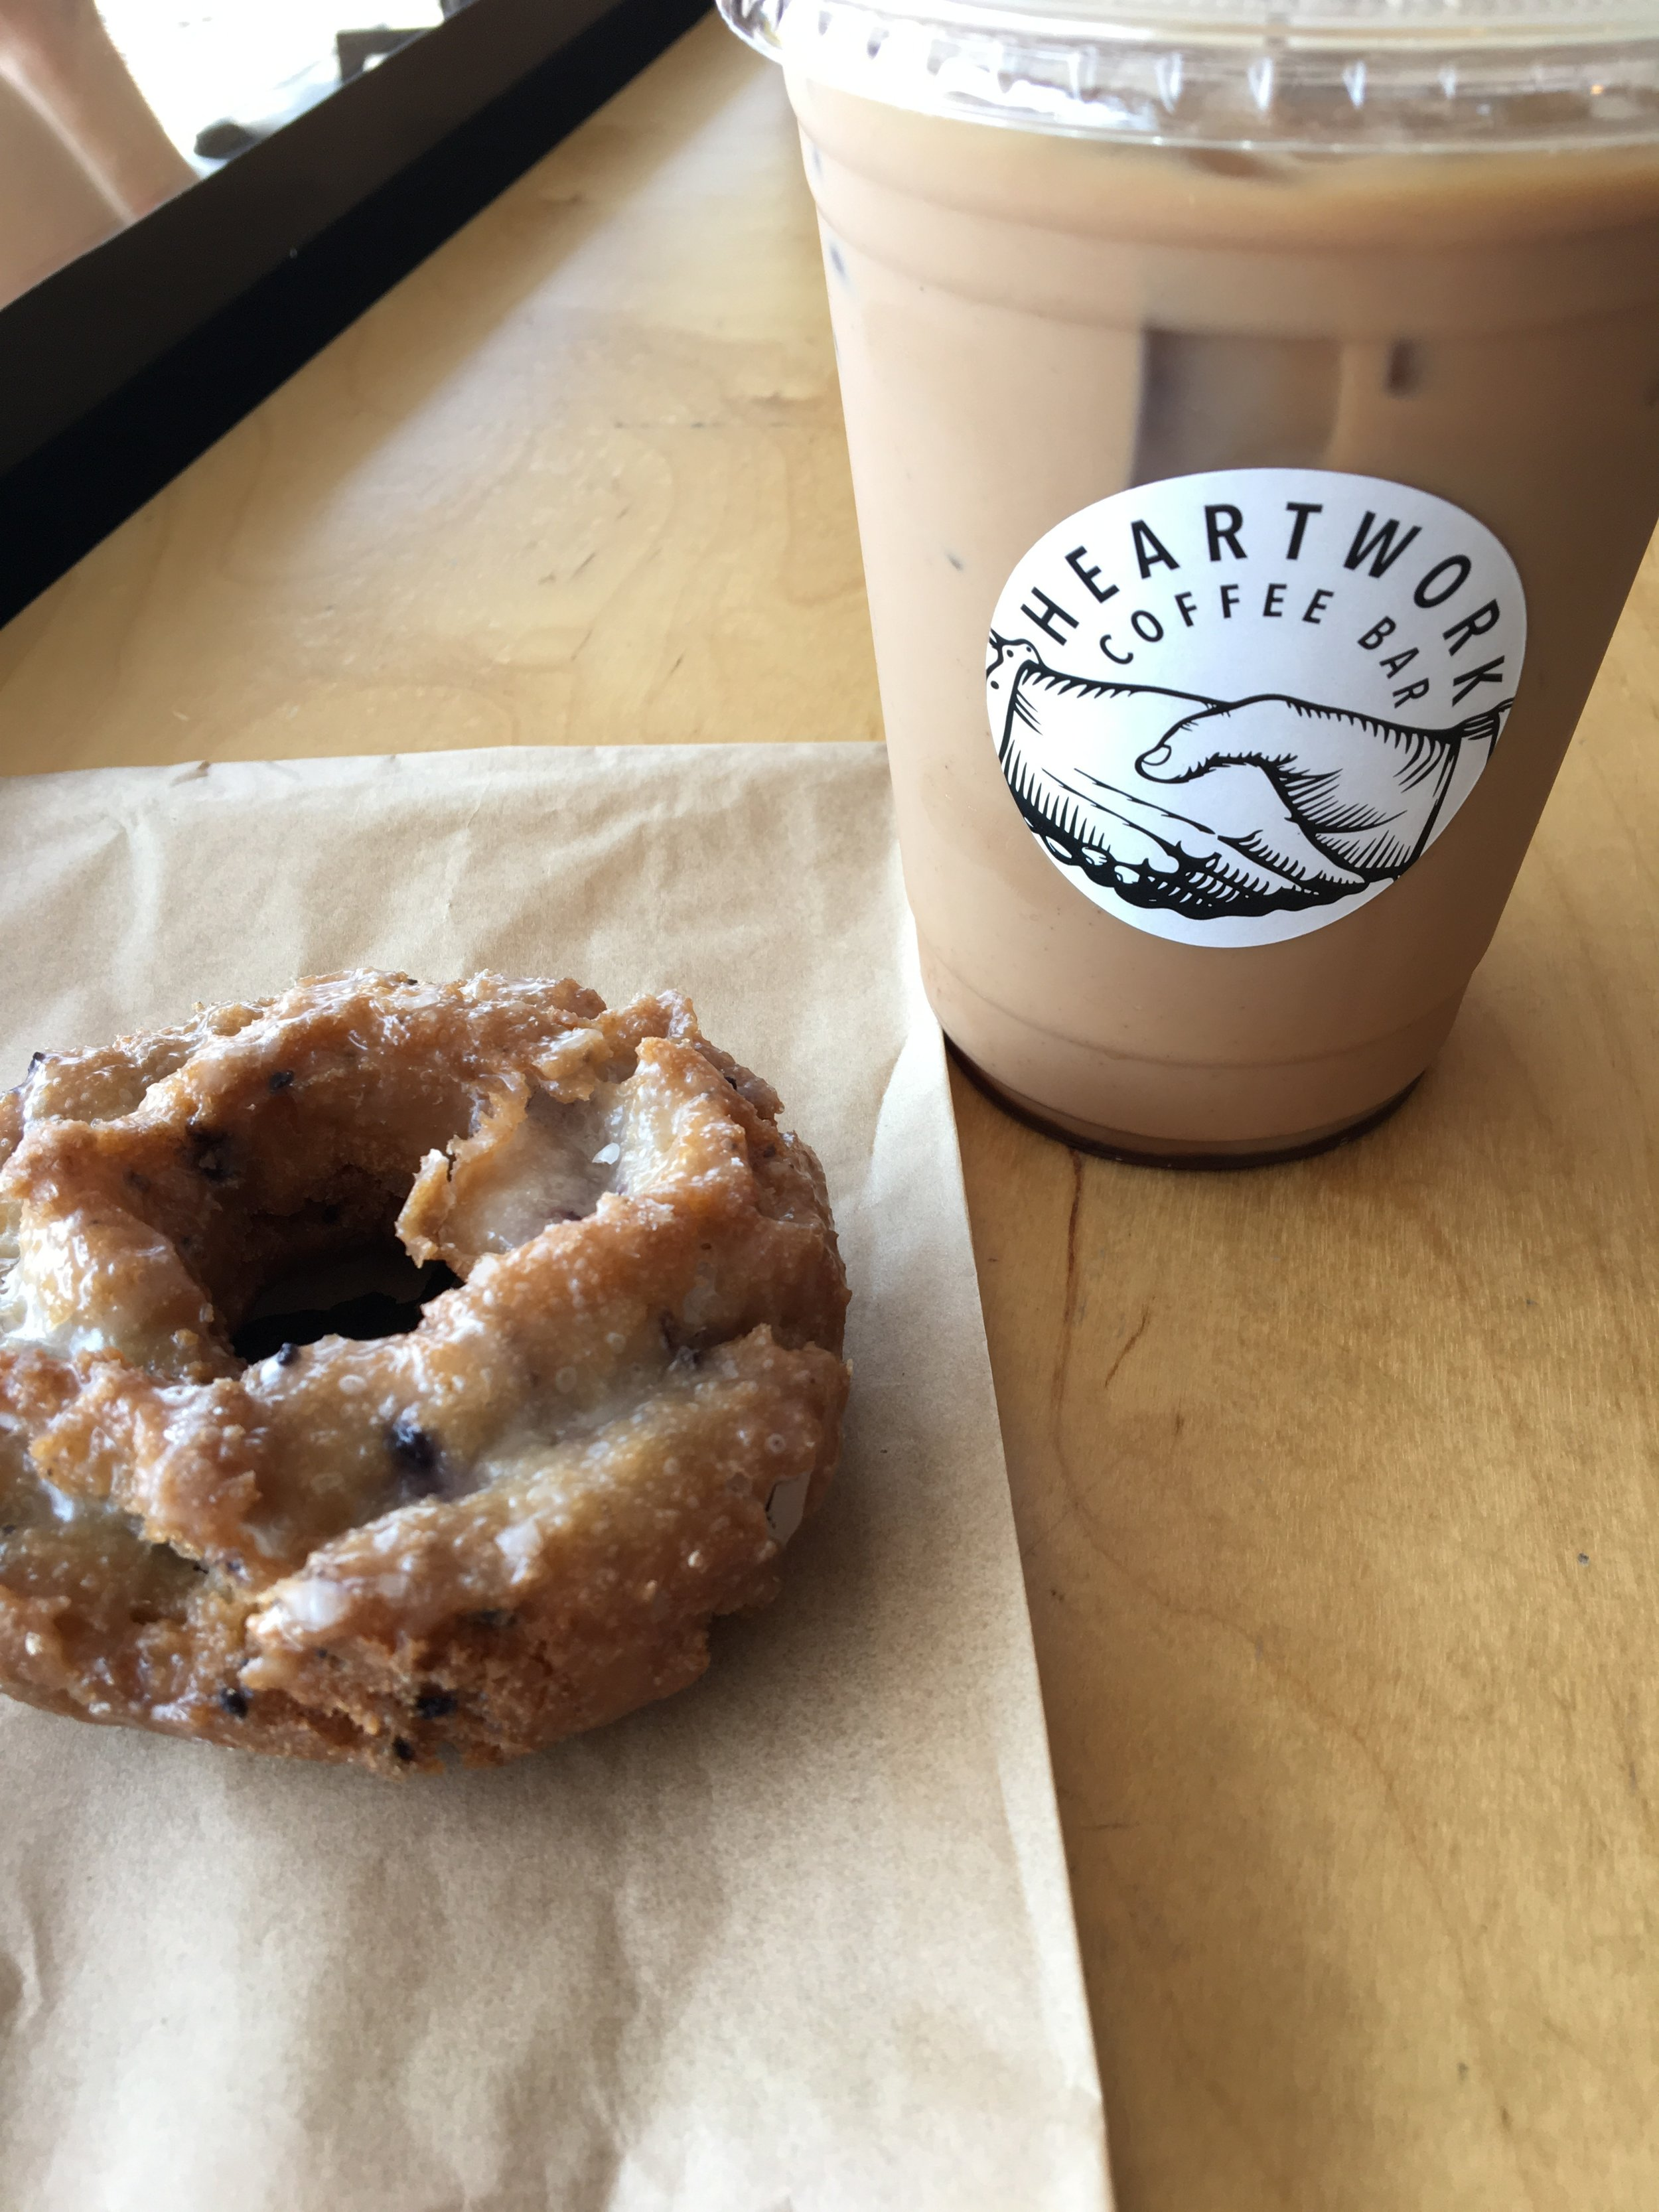 Blueberry doughnut and Clark Griswold at Heartwork Coffee Bar in Mission Hills. Photo by Ranger Holly.